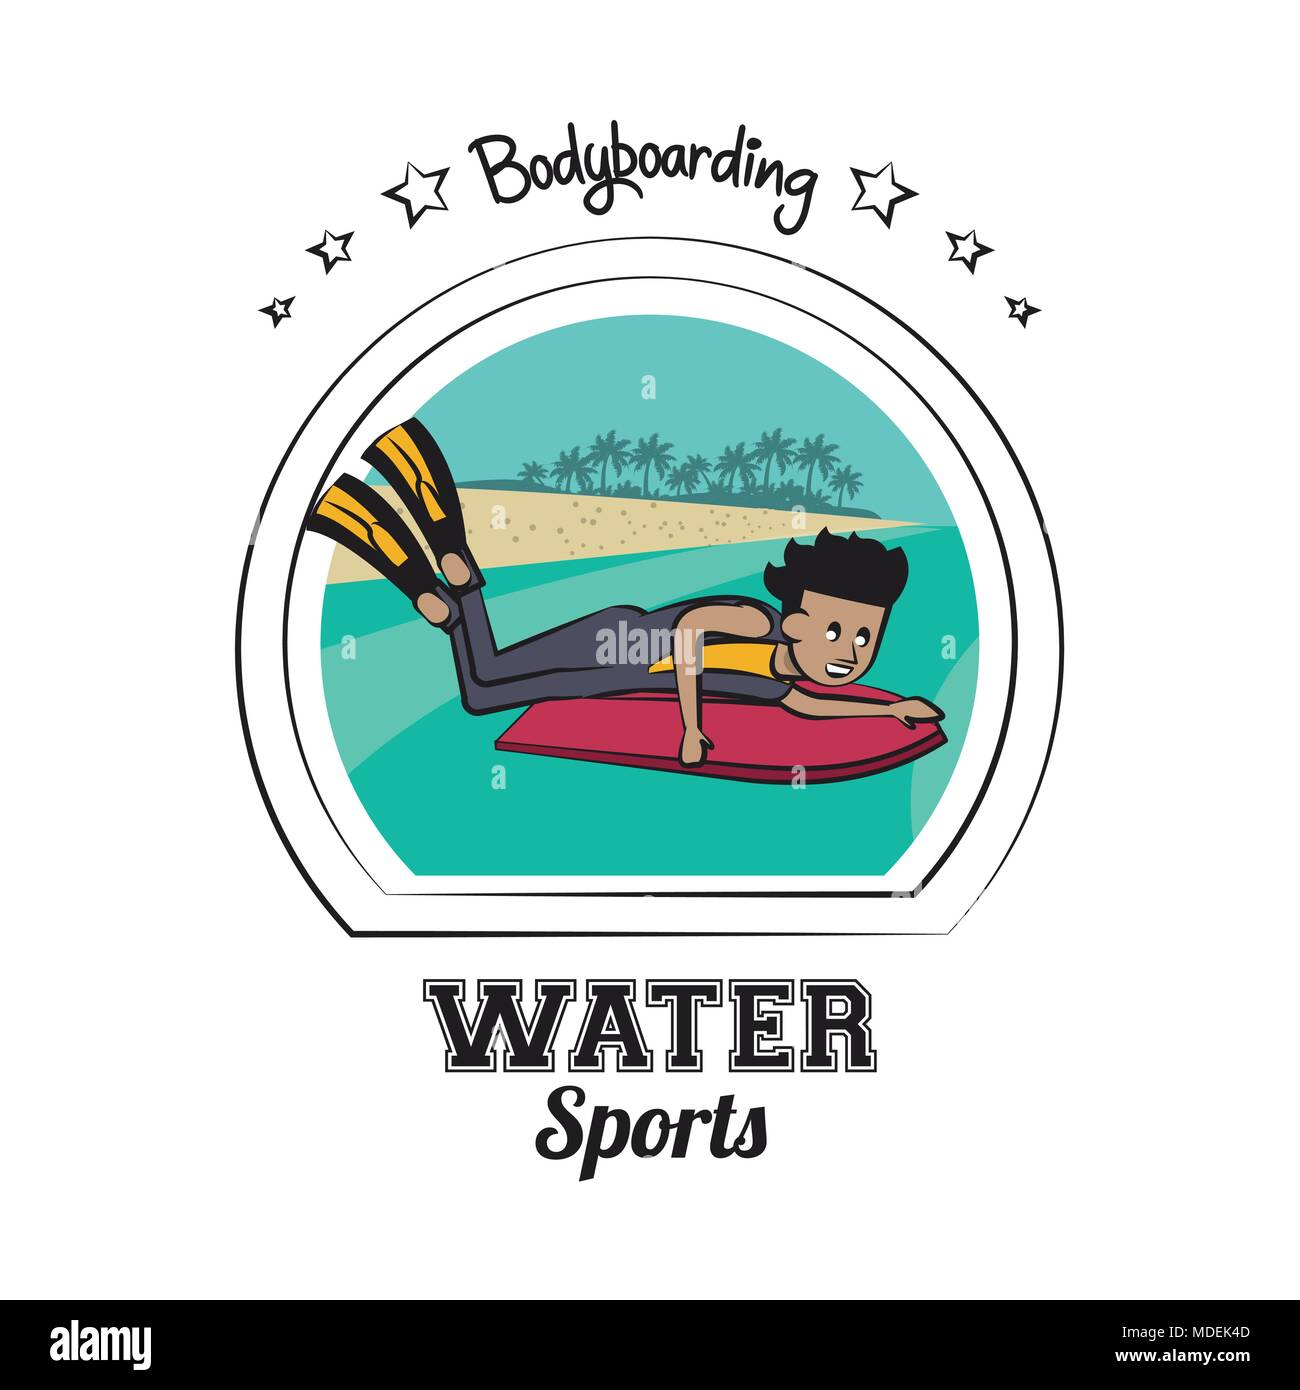 Water sports cartoon - Stock Image